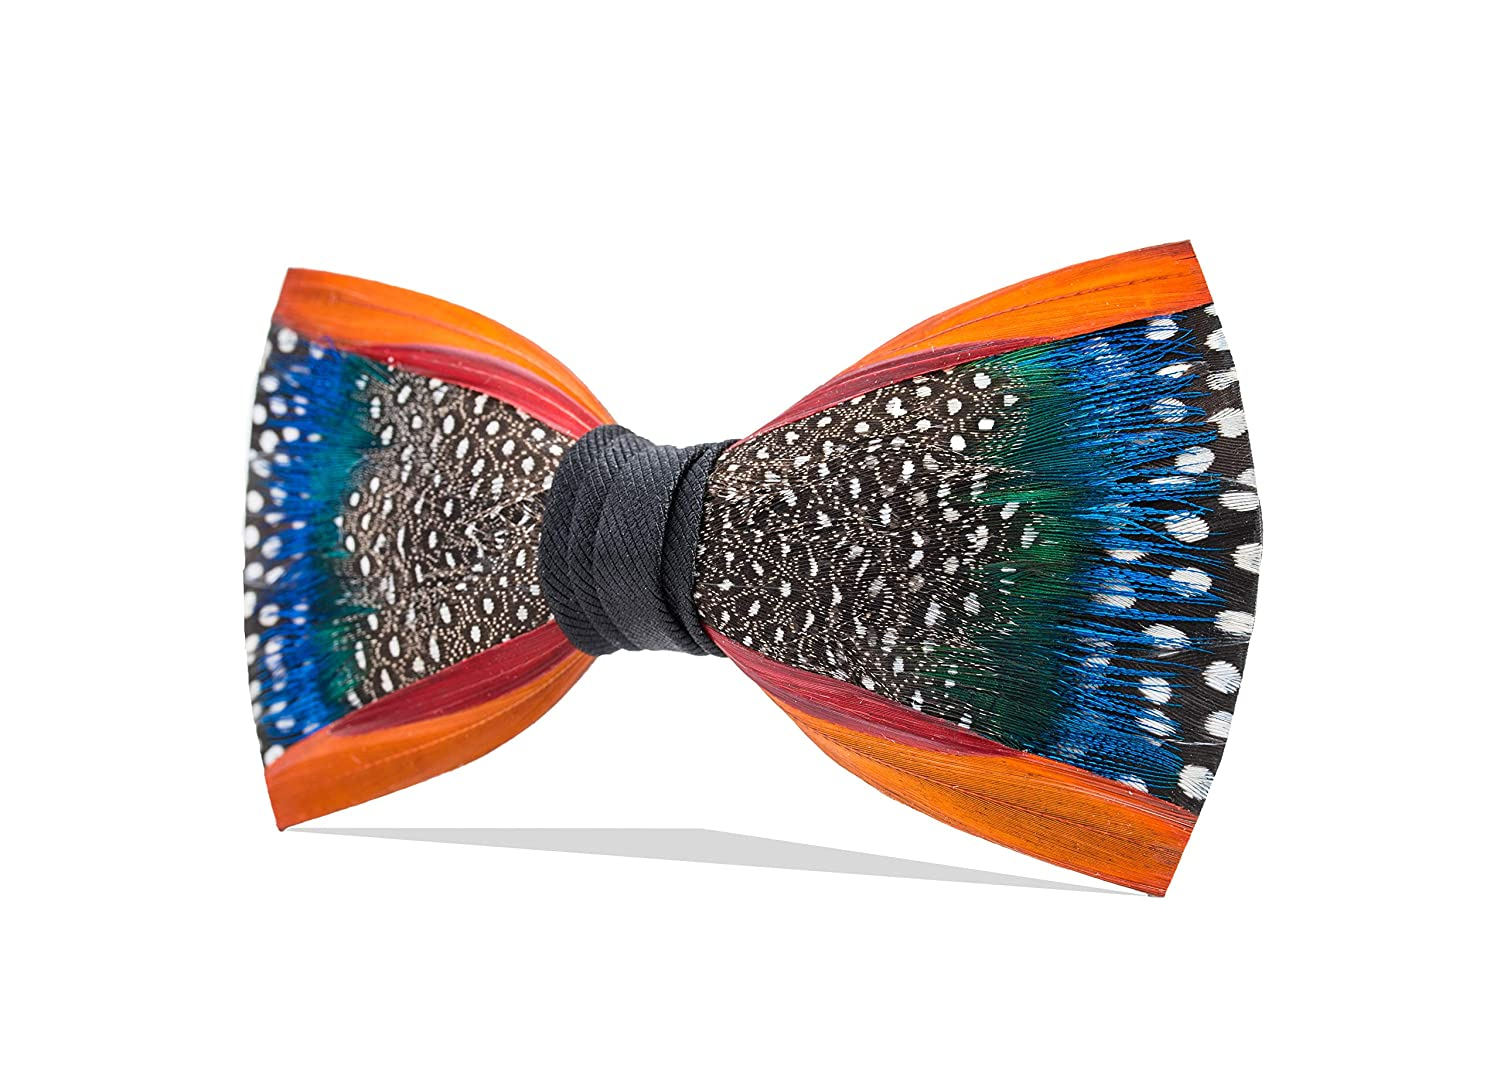 b4c97e95f636 Brackish Men's Mill Pond Handcrafted Pheasant/Guinea/Peacock Feather Bow Tie  (274-BRK) at Amazon Men's Clothing store: